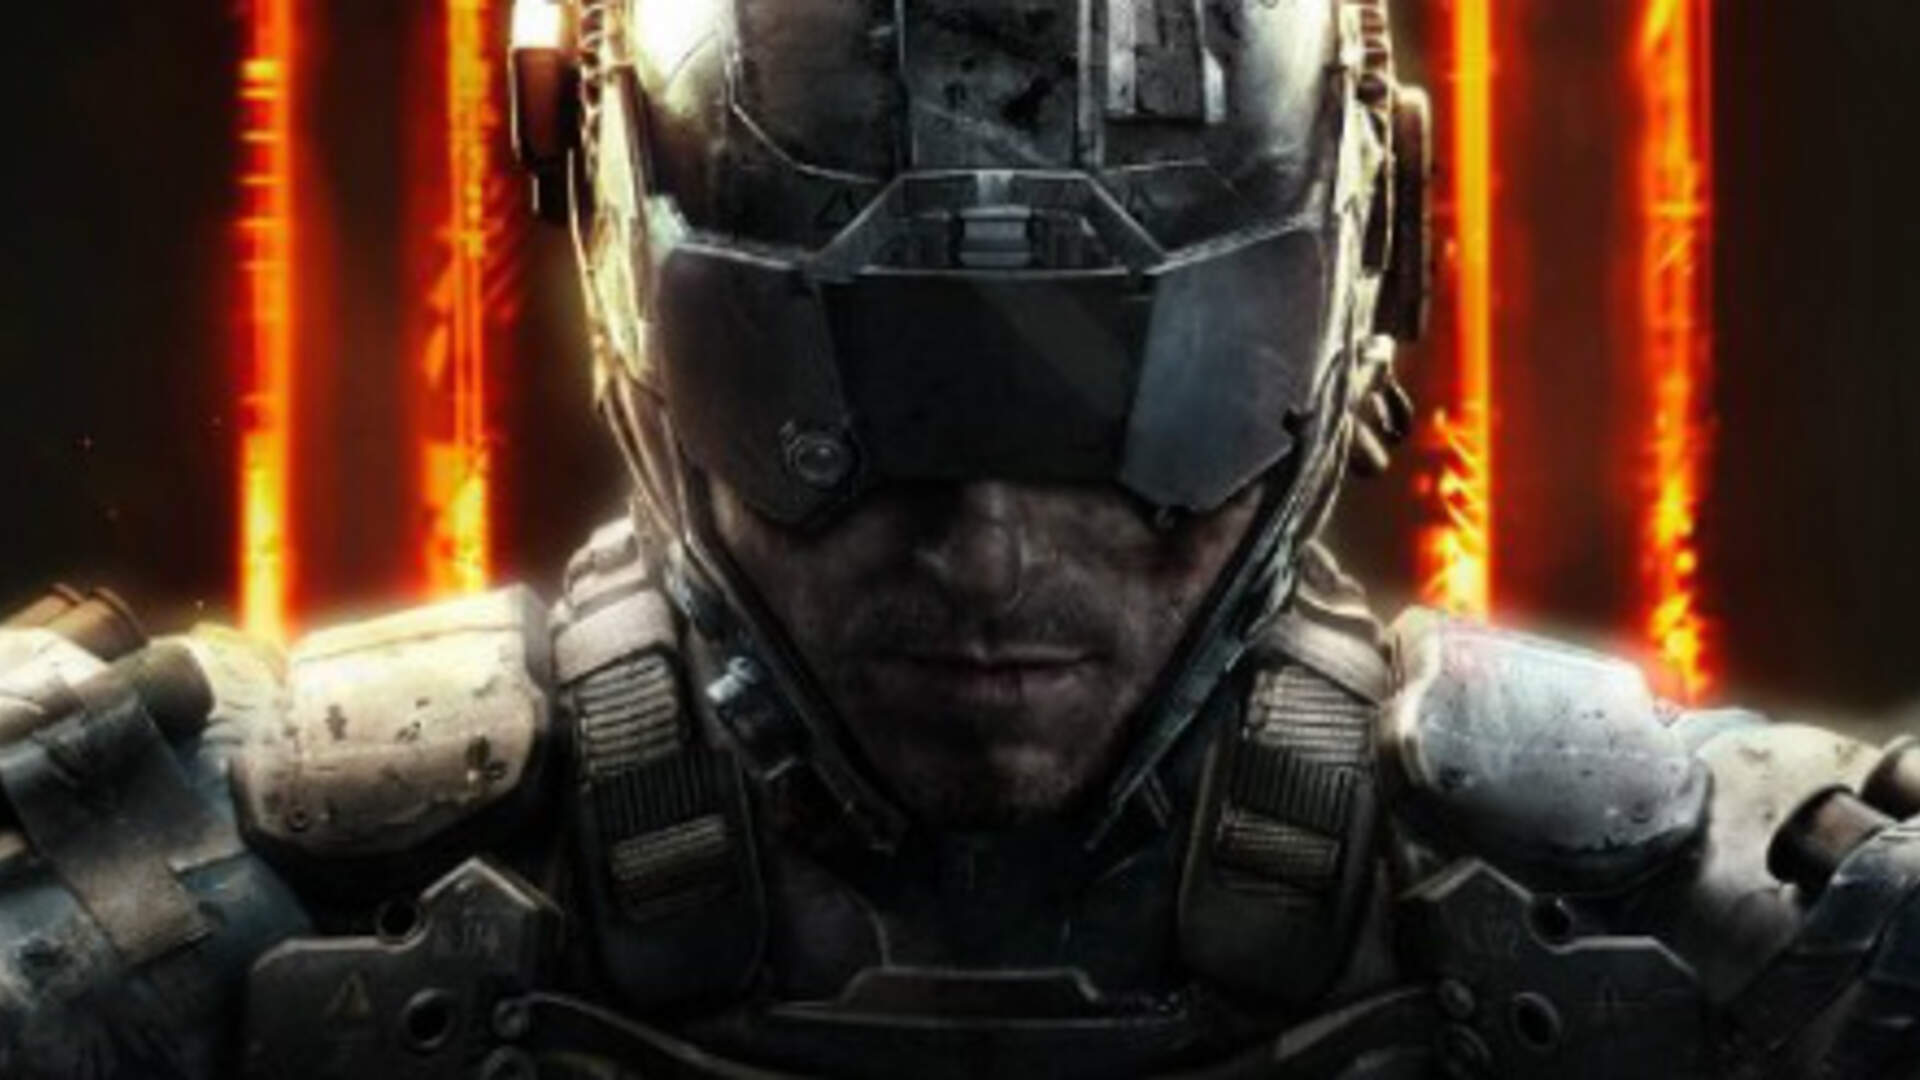 What Next for the Call of Duty Series?